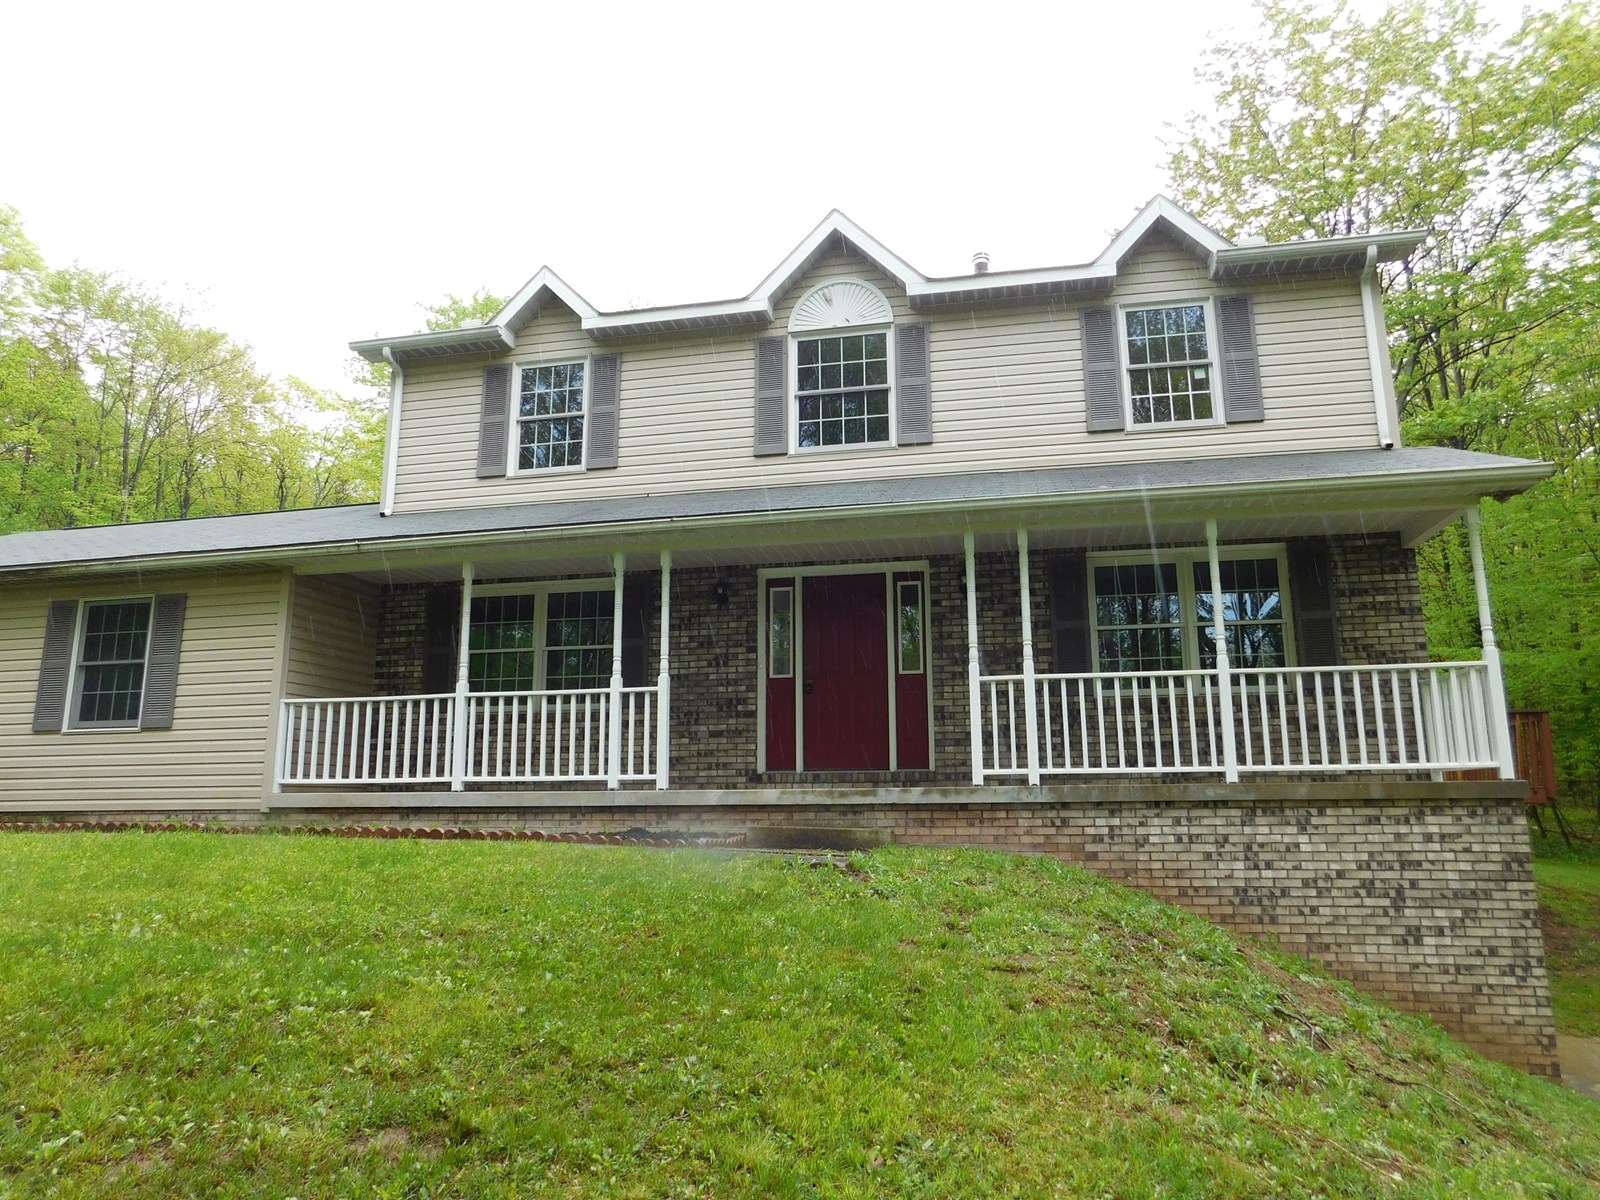 Lonaconing MD Single Family Home on 2 Acres